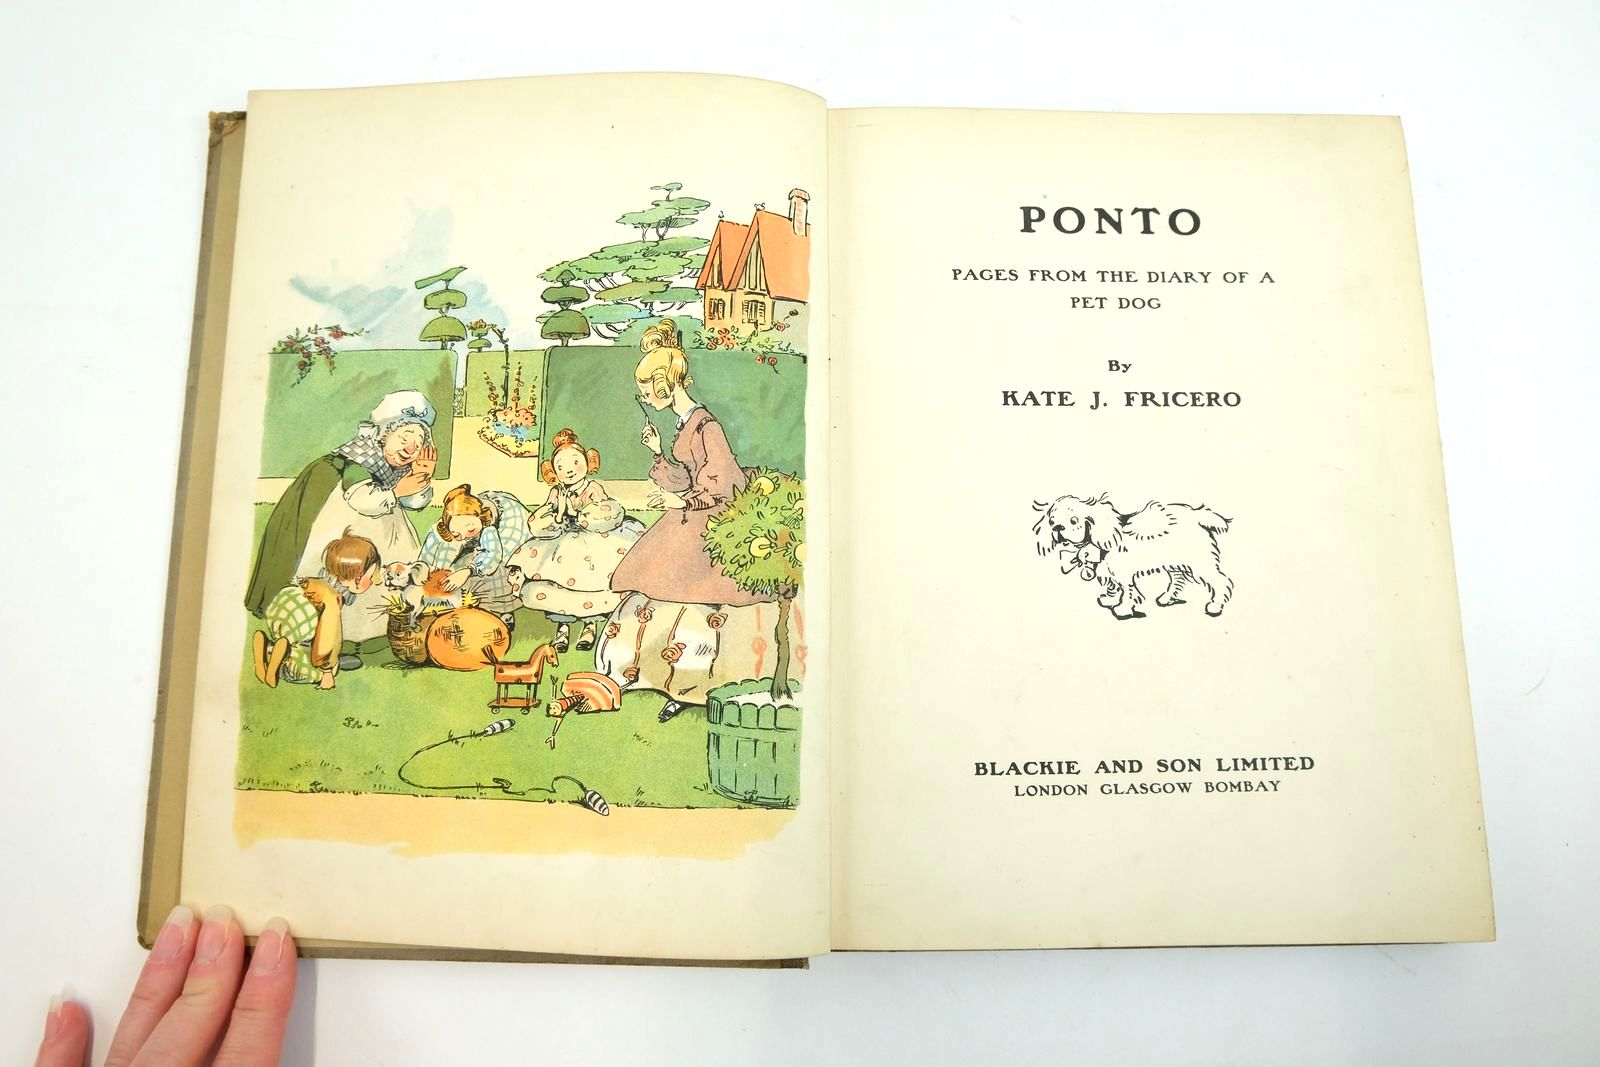 Photo of PONTO PAGES FROM THE DIARY OF A PET DOG written by Fricero, Kate J. illustrated by Fricero, Kate J. published by Blackie & Son Ltd. (STOCK CODE: 2134713)  for sale by Stella & Rose's Books